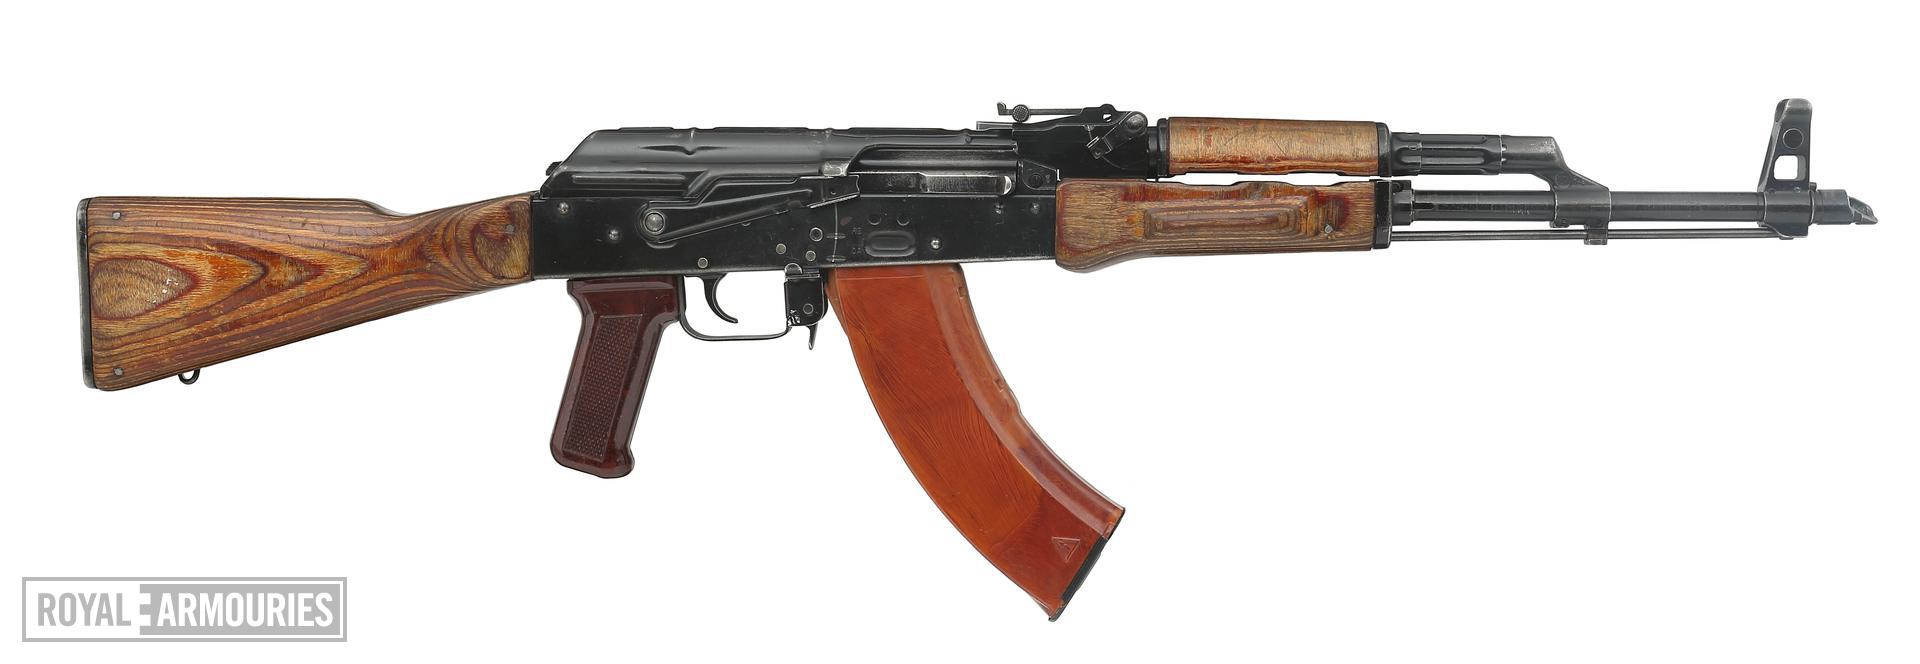 (Top) Kalashnikov AK-47 centrefire automatic rifle, Russian, about 1951(PR.954.) (Bottom) Kalashnikov AKM centrefire automatic rifle, Russian (PR.9071)